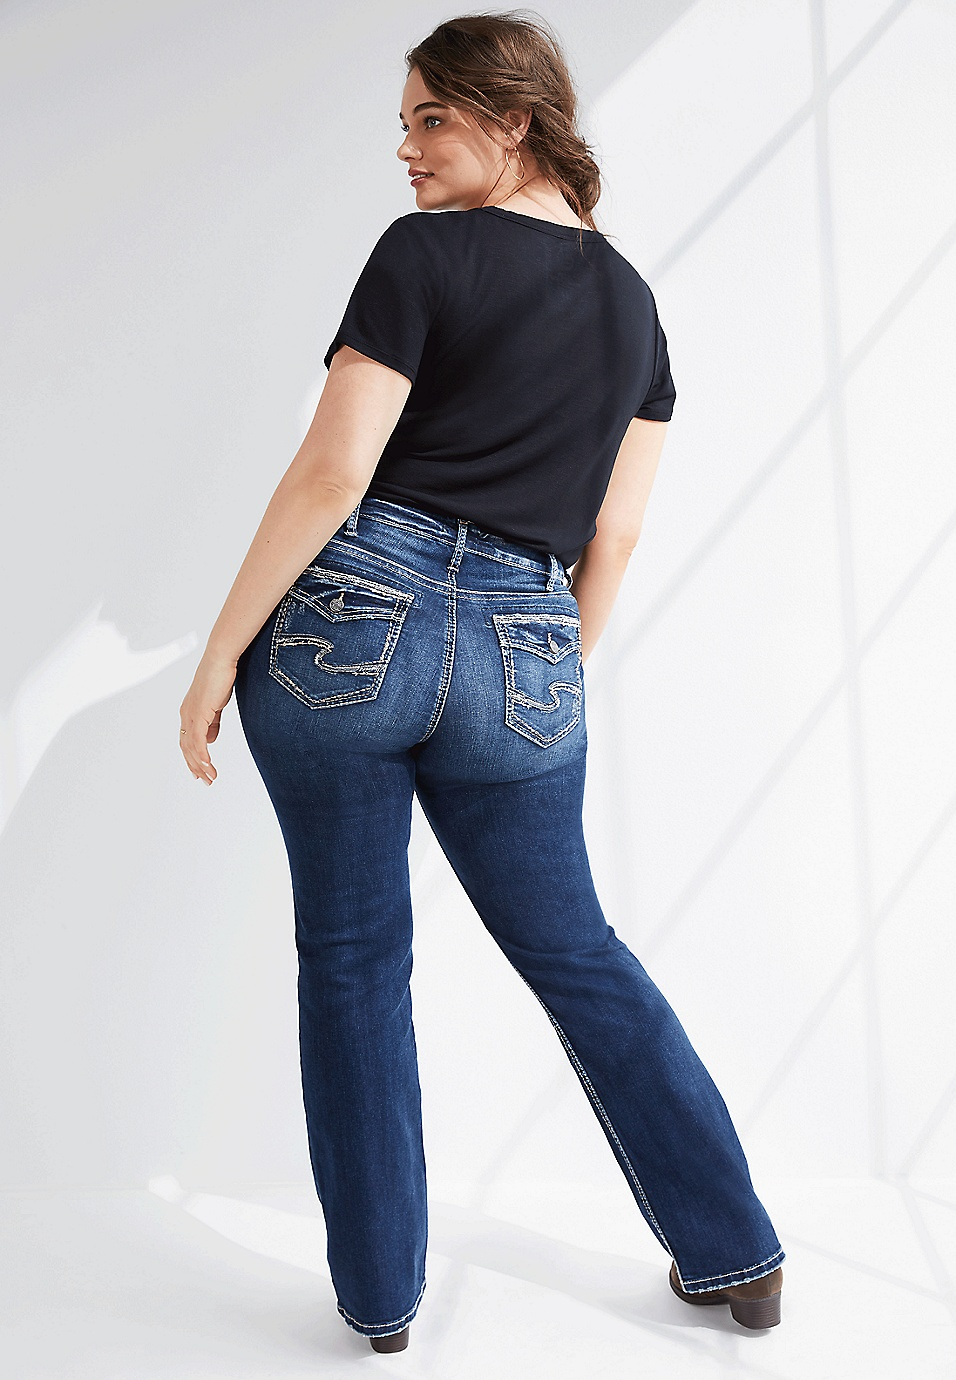 sale retailer wholesale dealer cost charm plus size Silver Jeans Co.® Avery slim boot jean | maurices